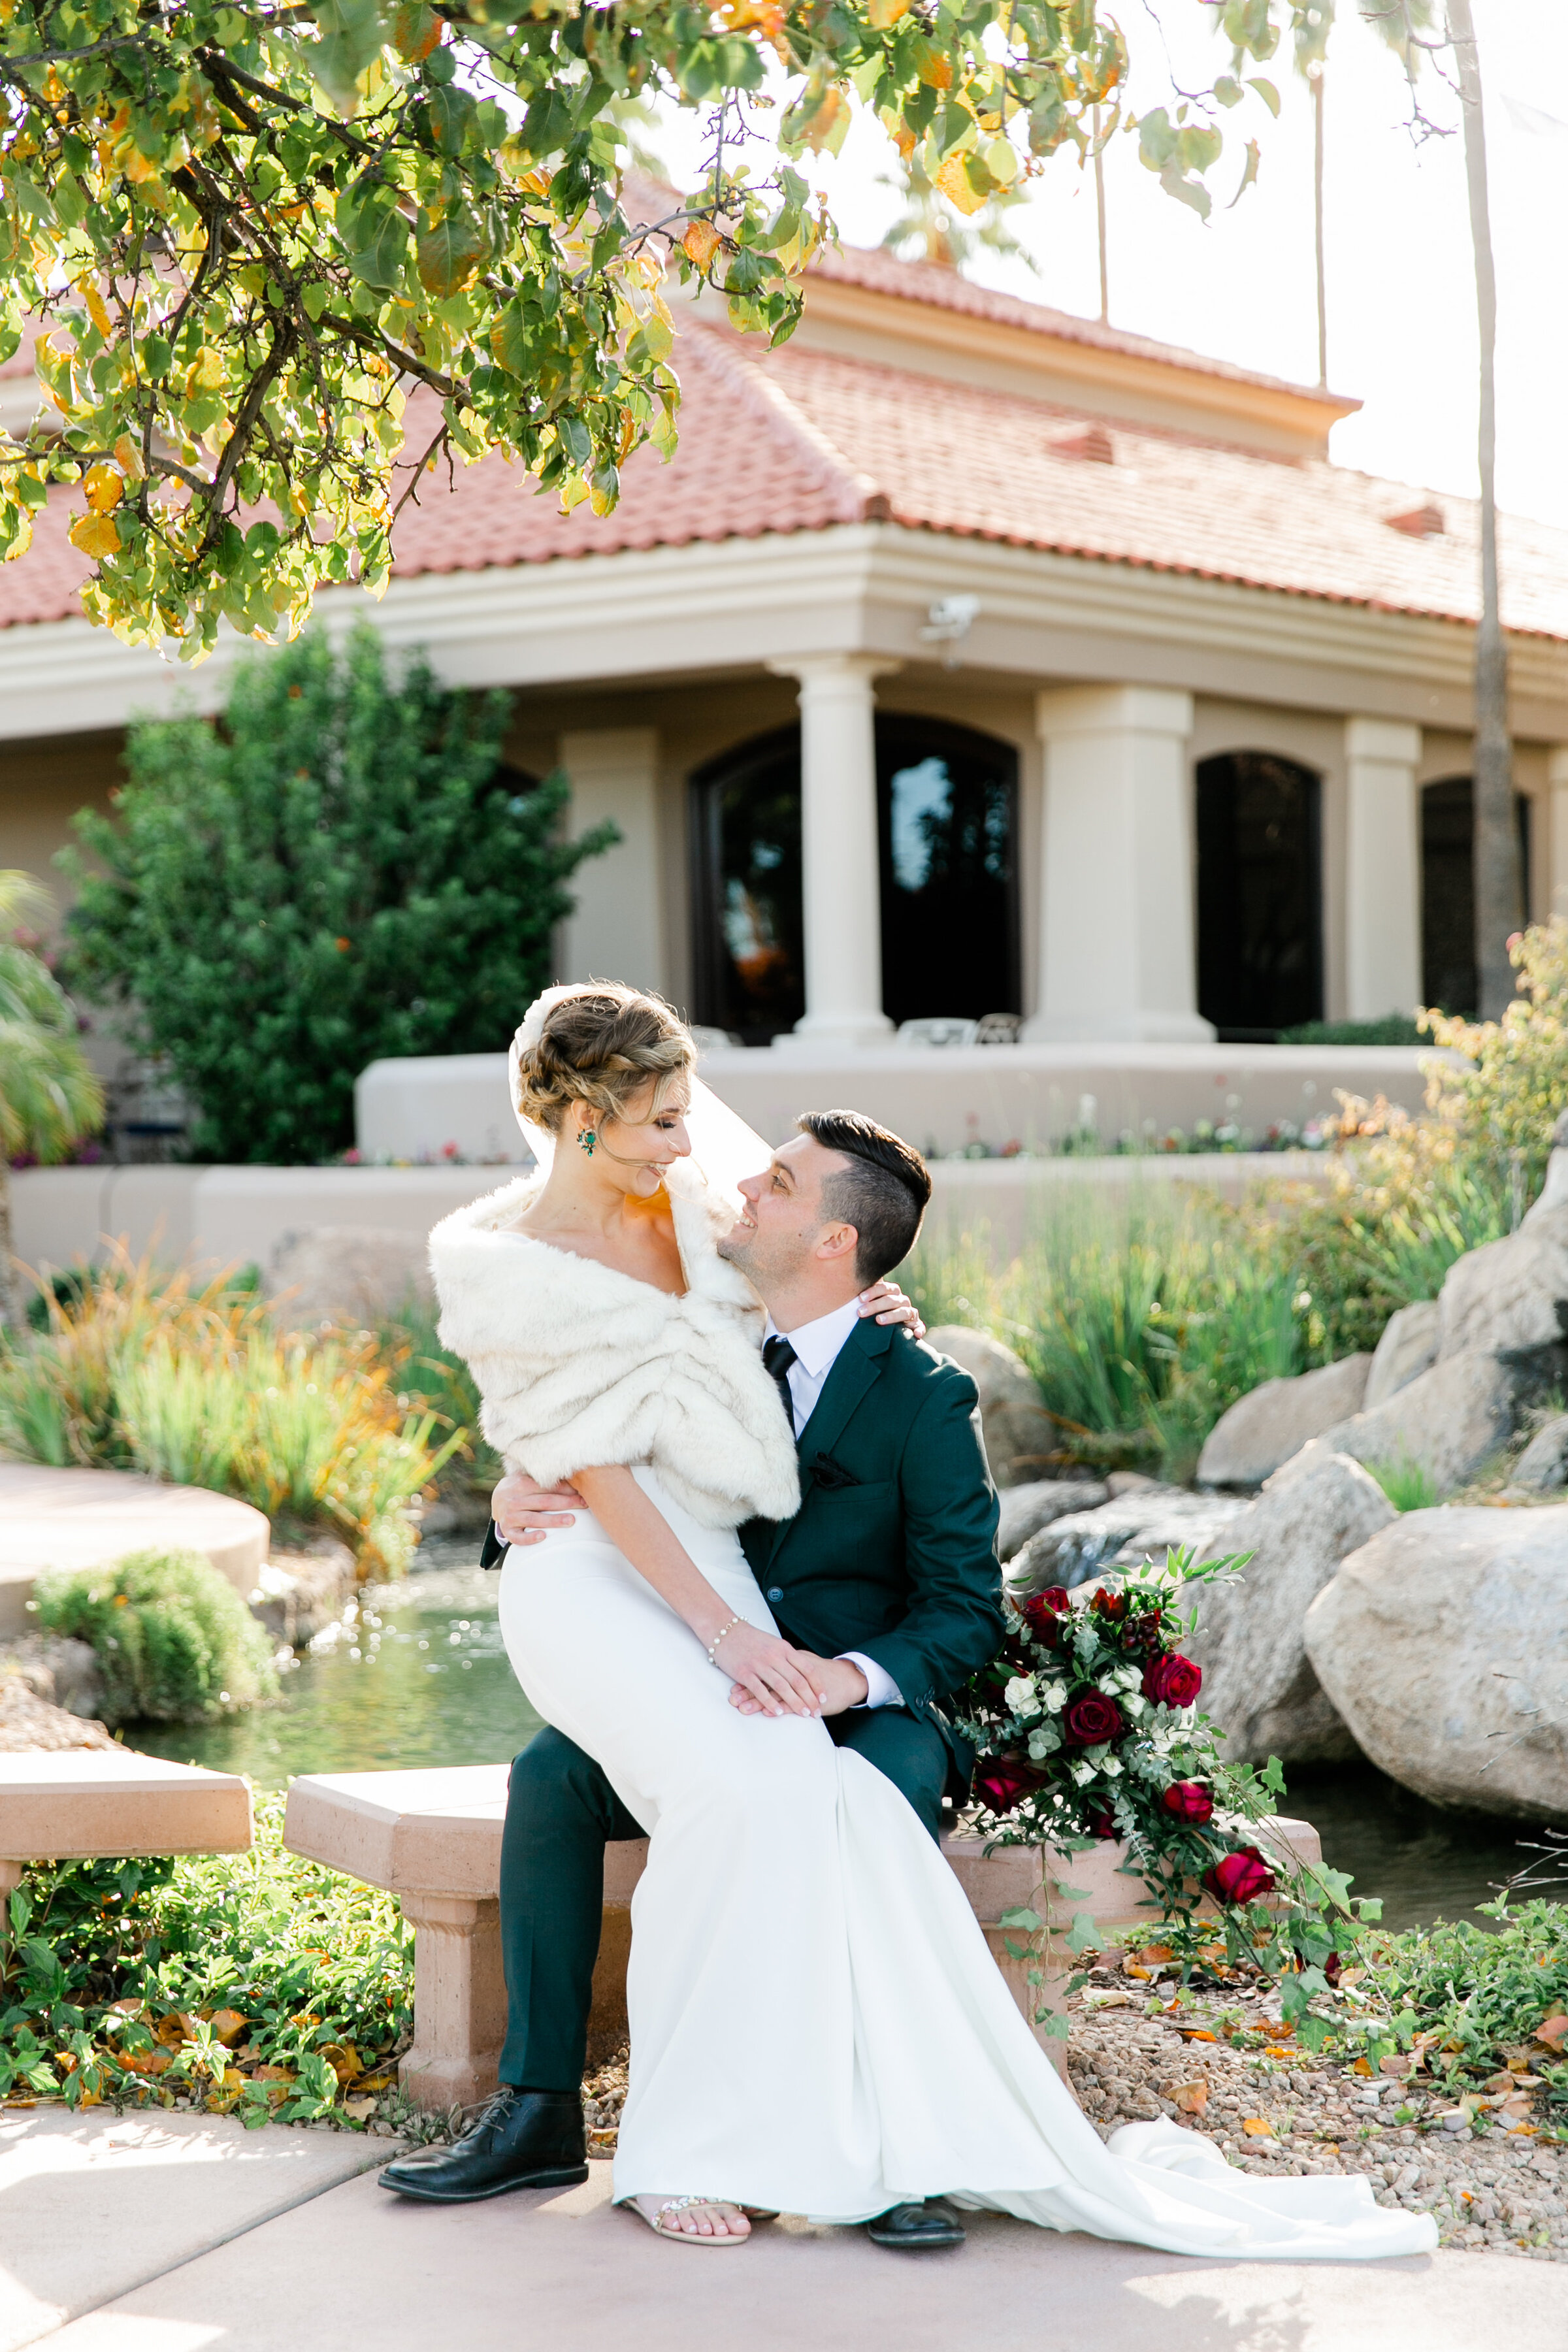 Karlie Colleen Photography - Gilbert Arizona Wedding - Val Vista Lakes - Brynne & Josh-446